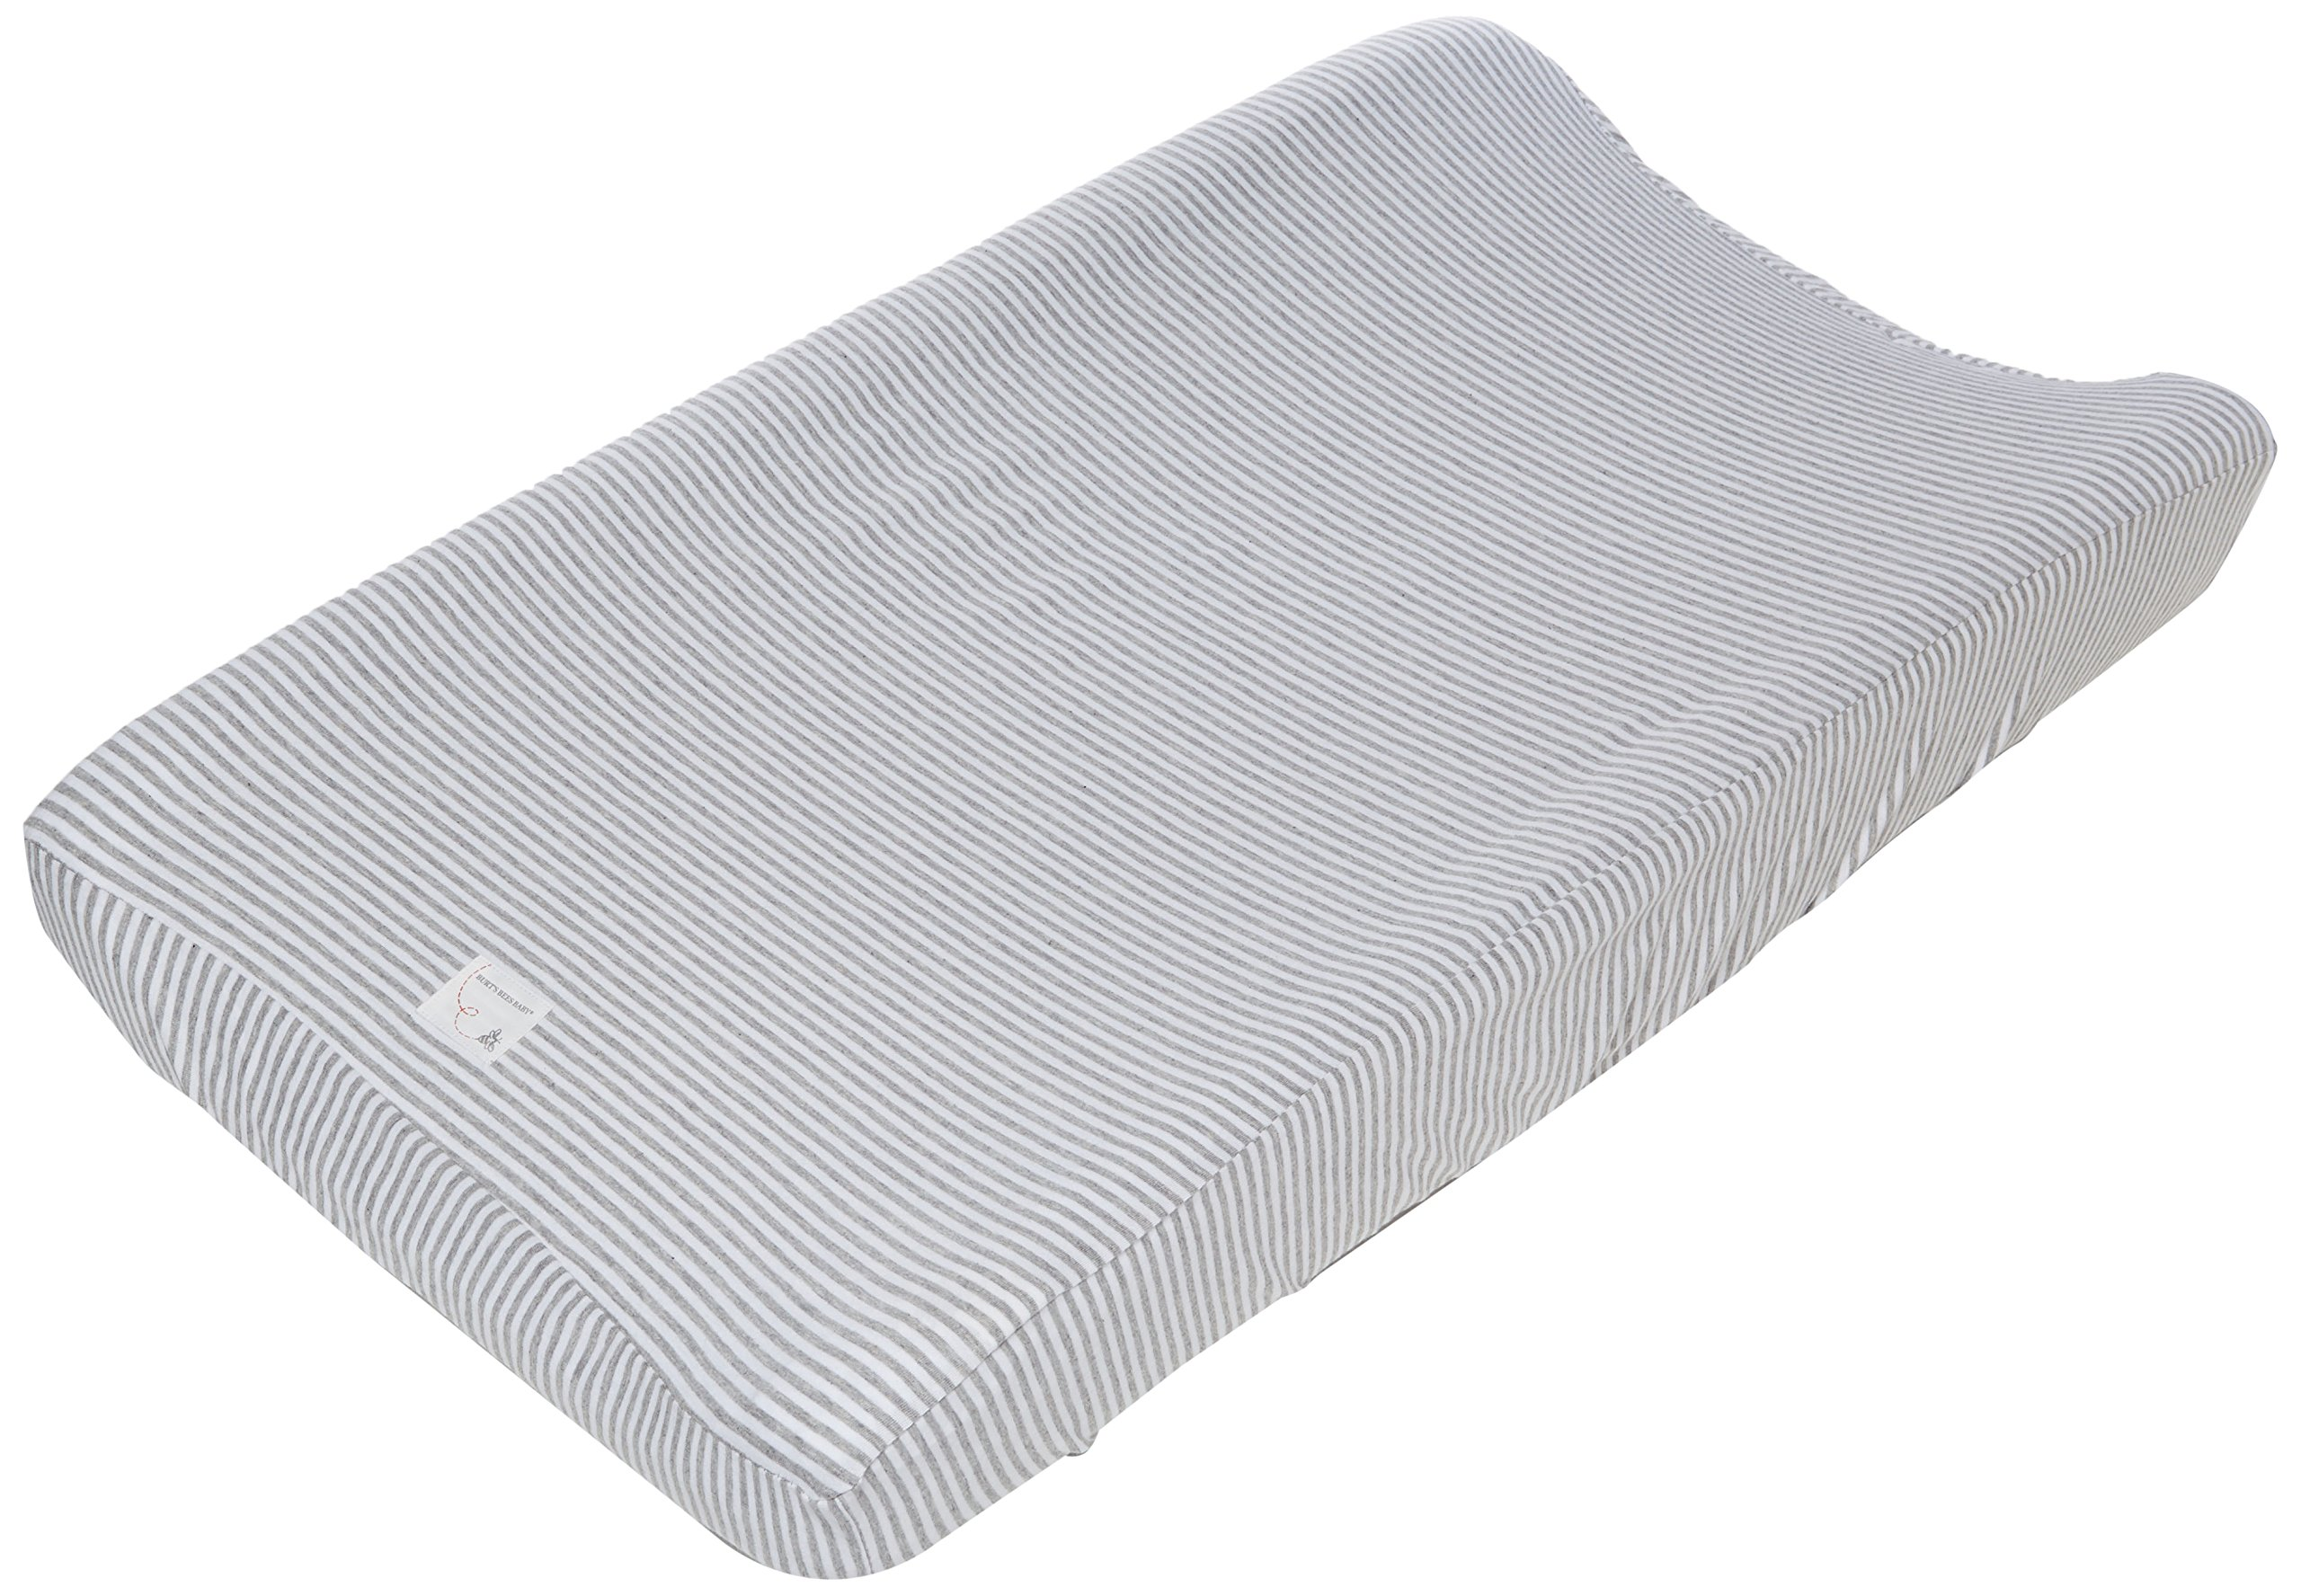 Burt's Bees Baby - Changing Pad Cover, 100% Organic Cotton Changing Pad Liner for Standard 16'' x 32'' Baby Changing Mats (Heather Grey Thin Stripes)